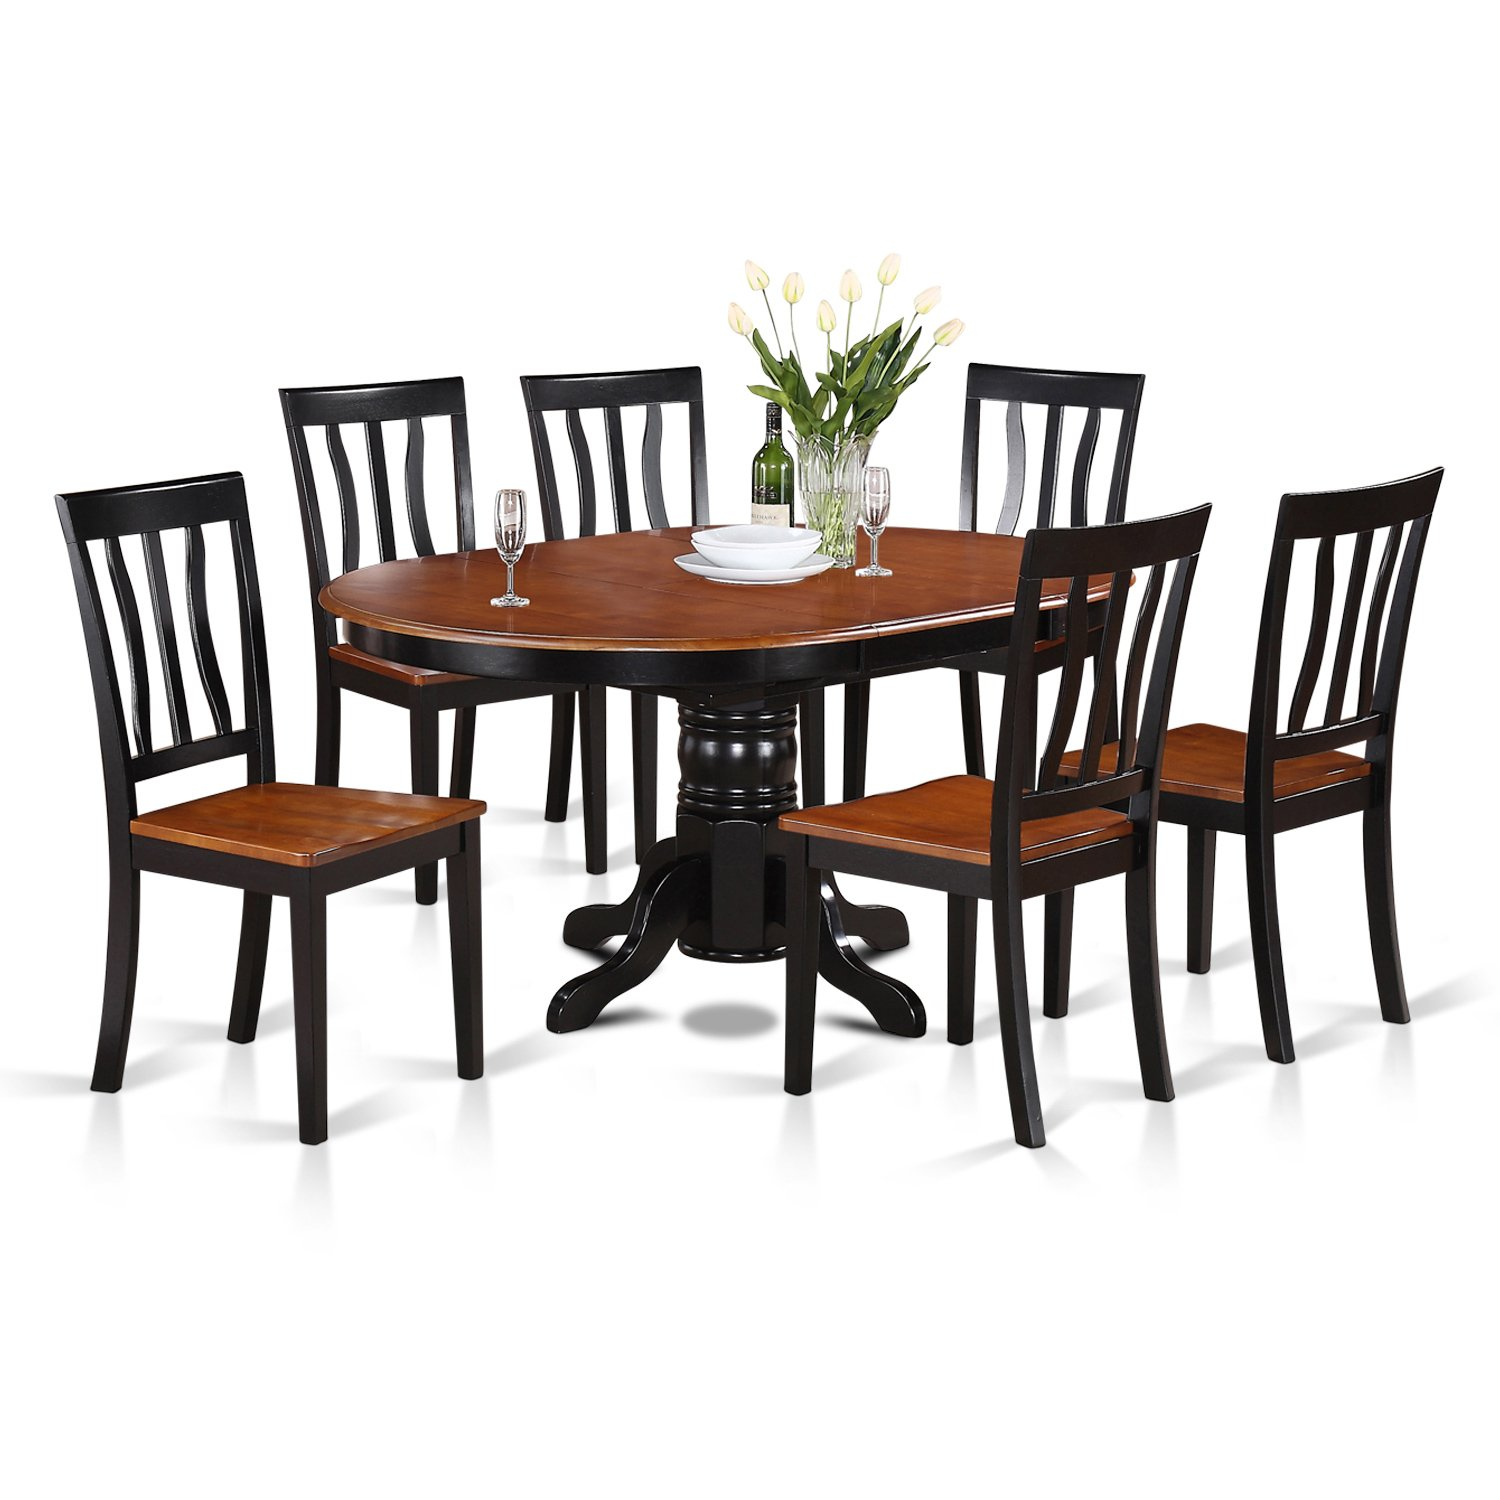 Amazon.com: East West Furniture AVAT7-BLK-W 7-Piece Dining Table Set ...